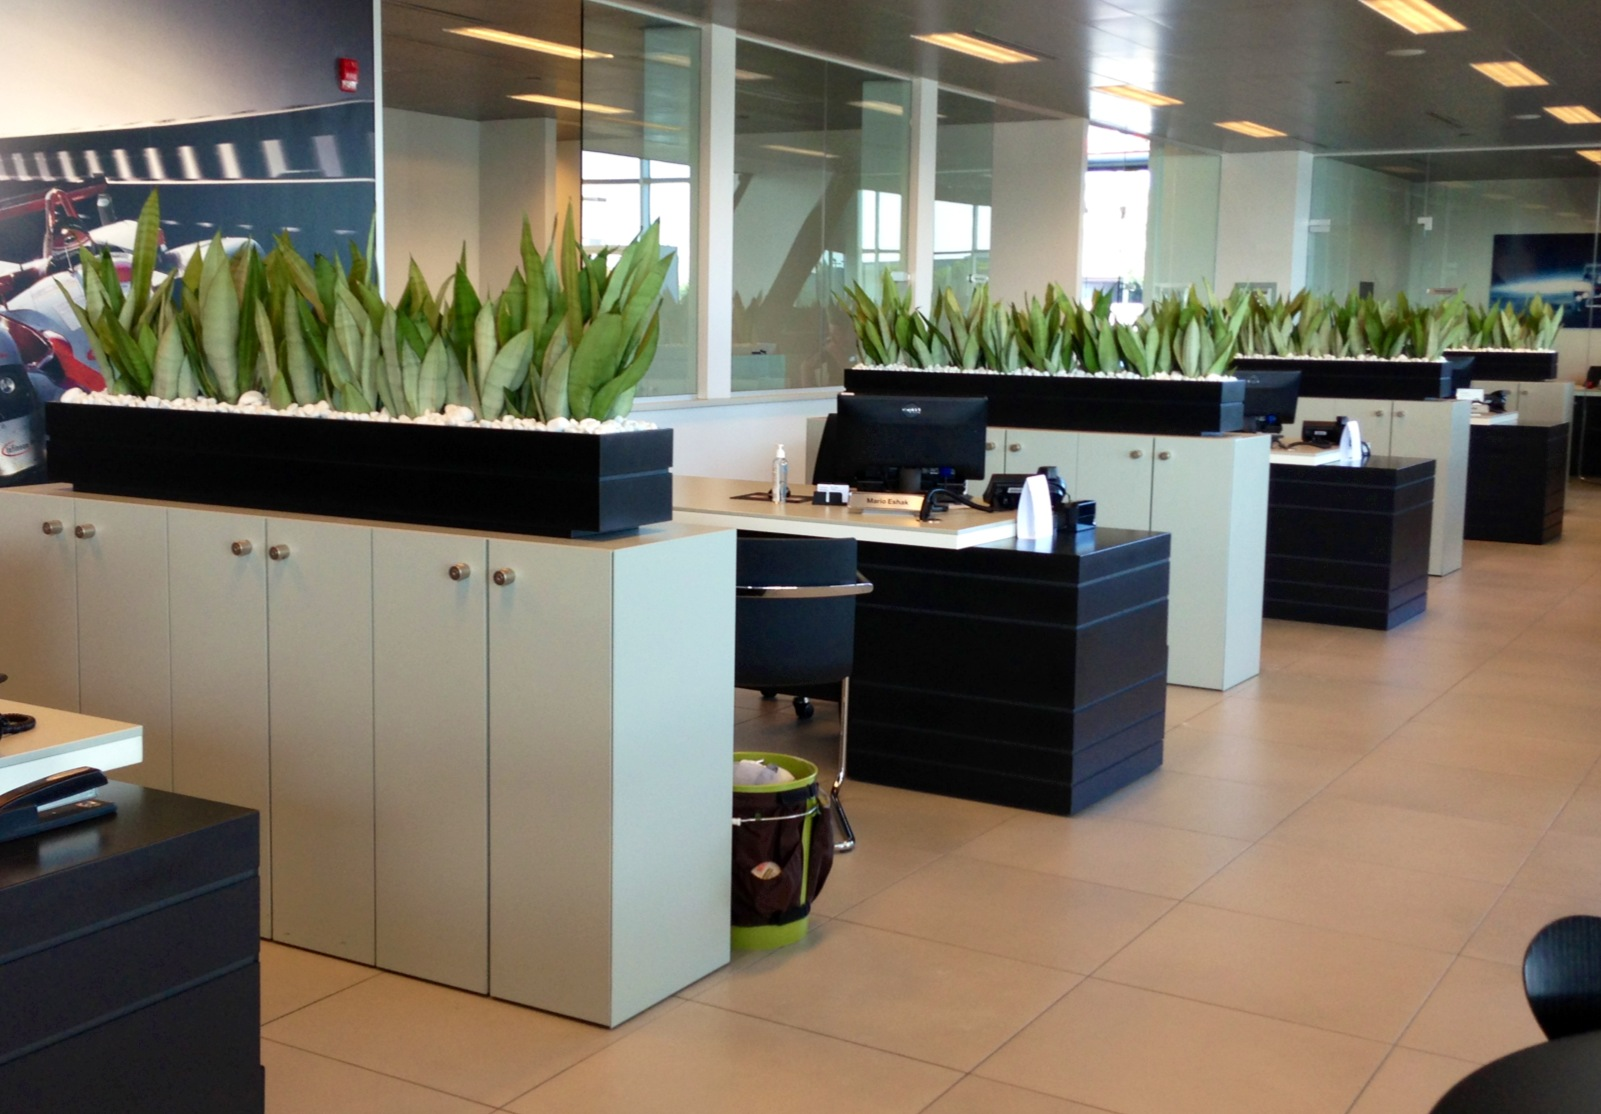 Top 8 Natural Green Plants Suits Your Office Indoors